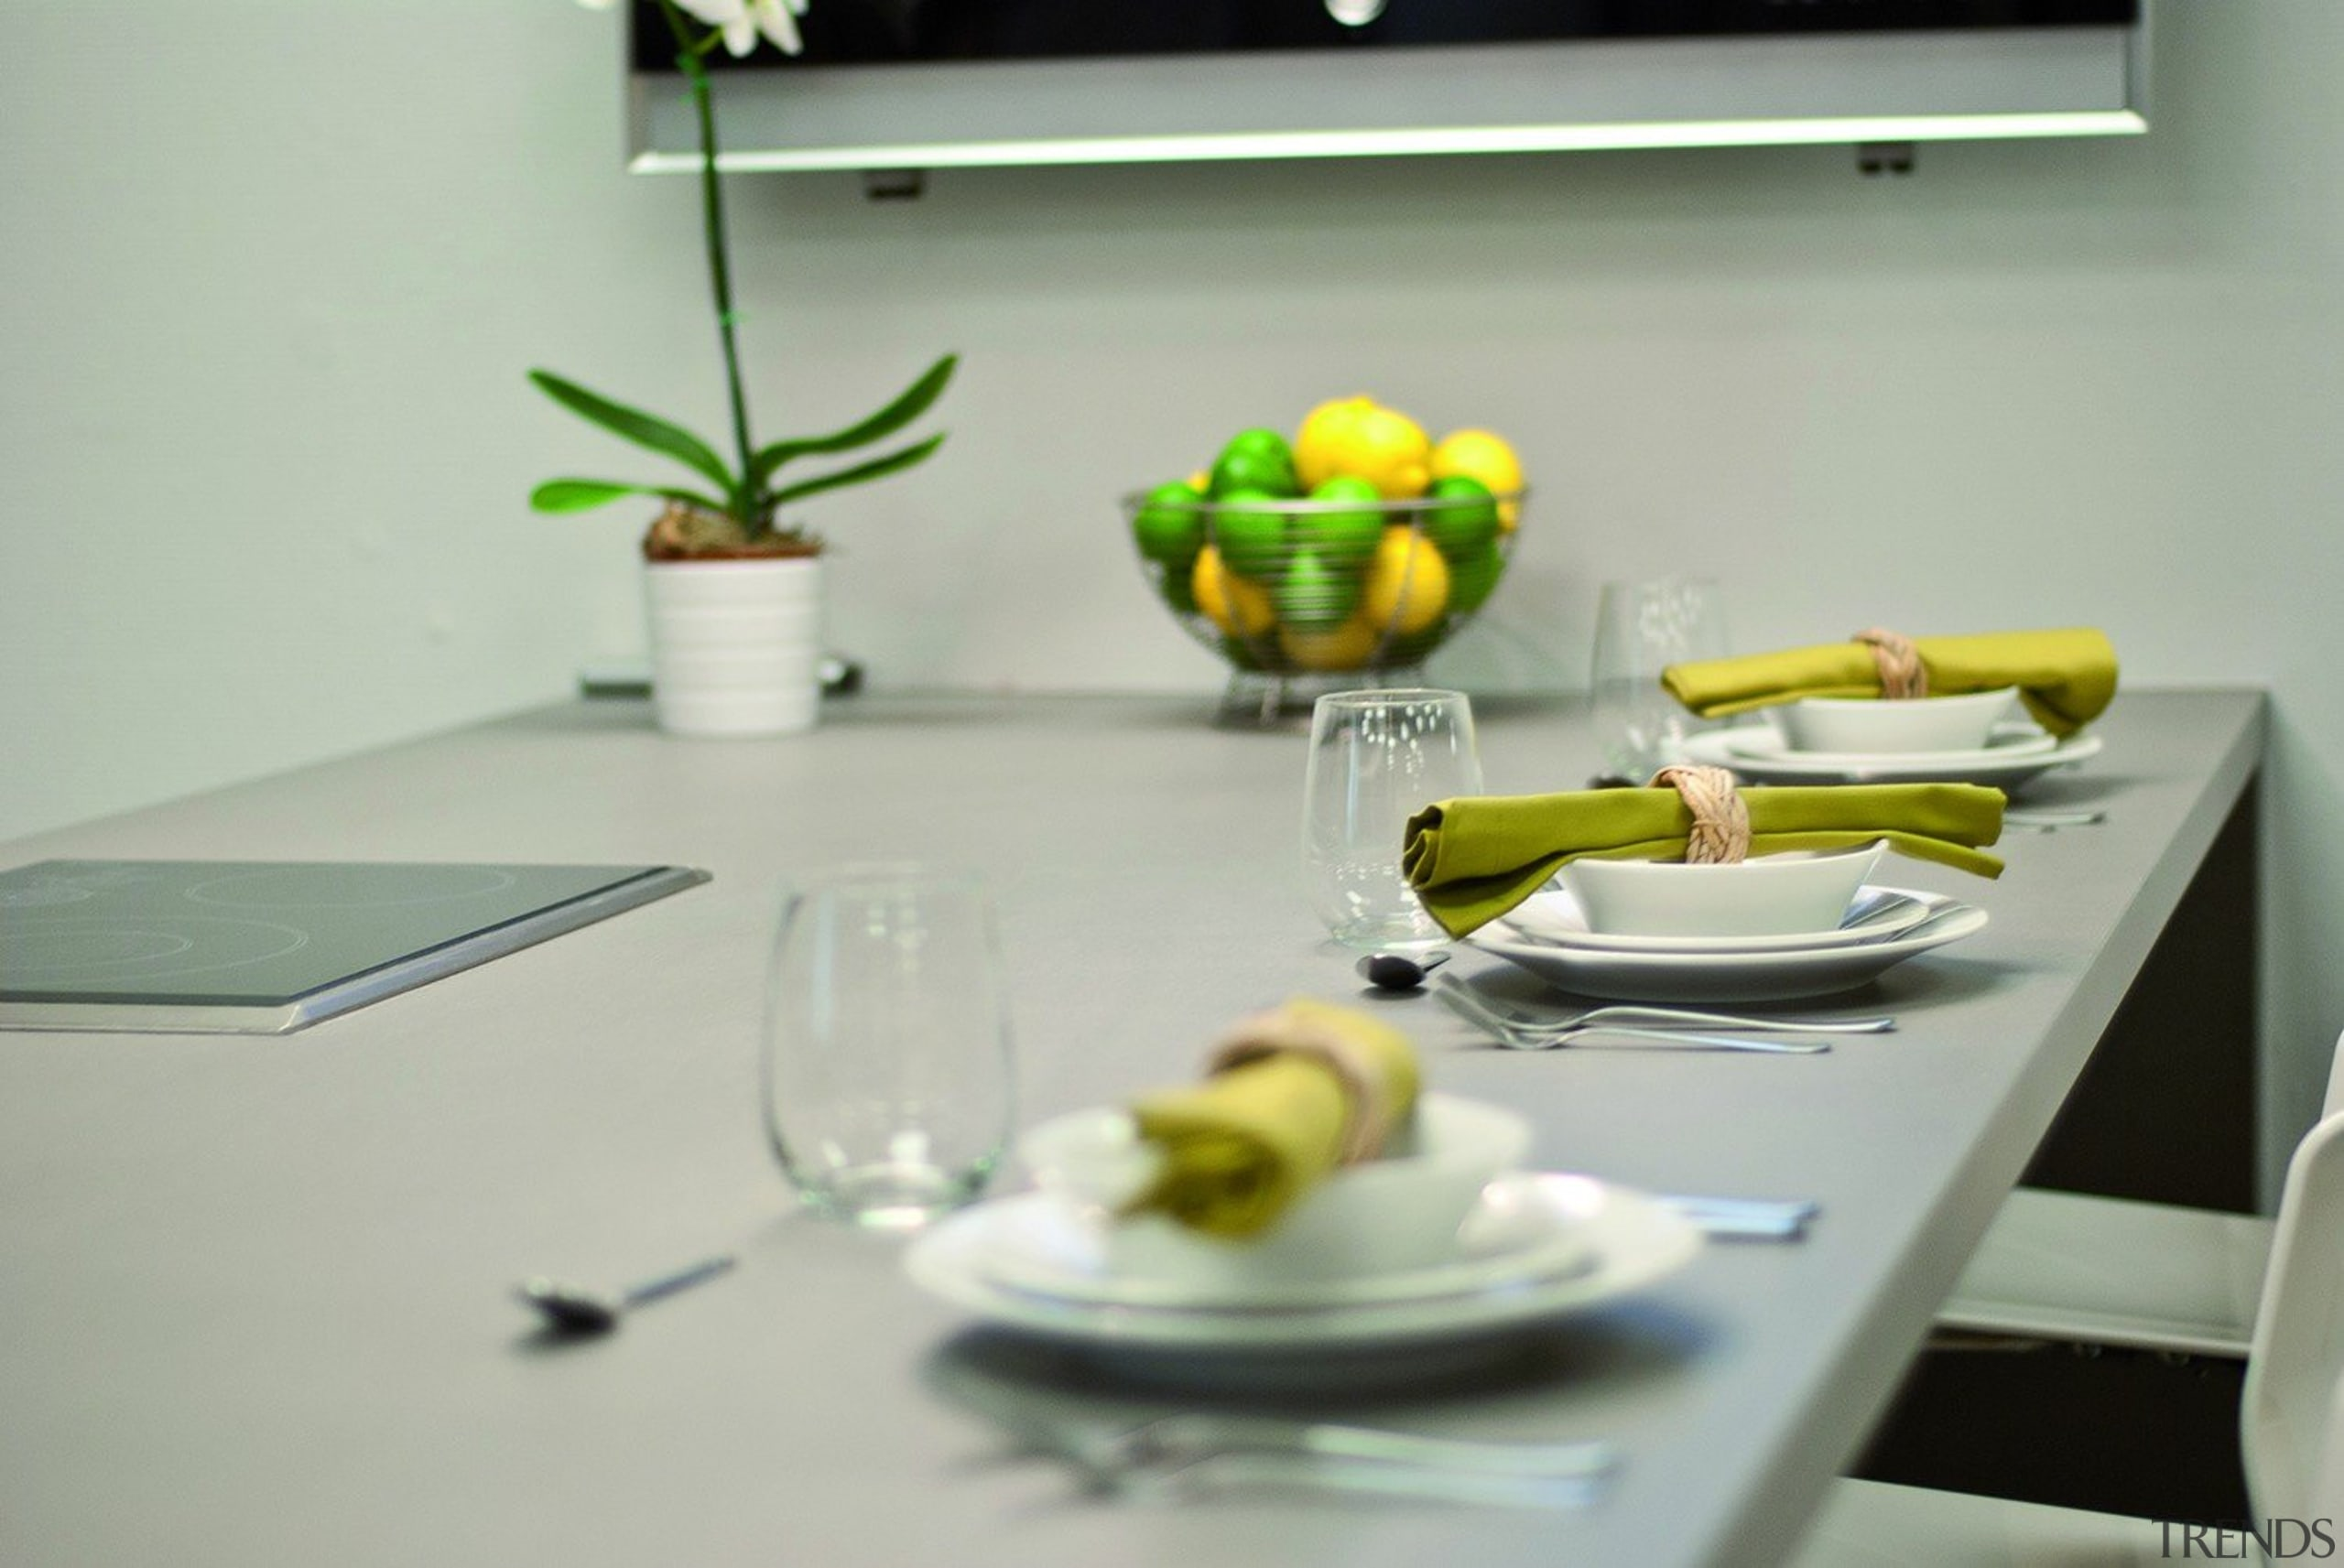 Cement - dining room   furniture   interior dining room, furniture, interior design, table, tableware, yellow, gray